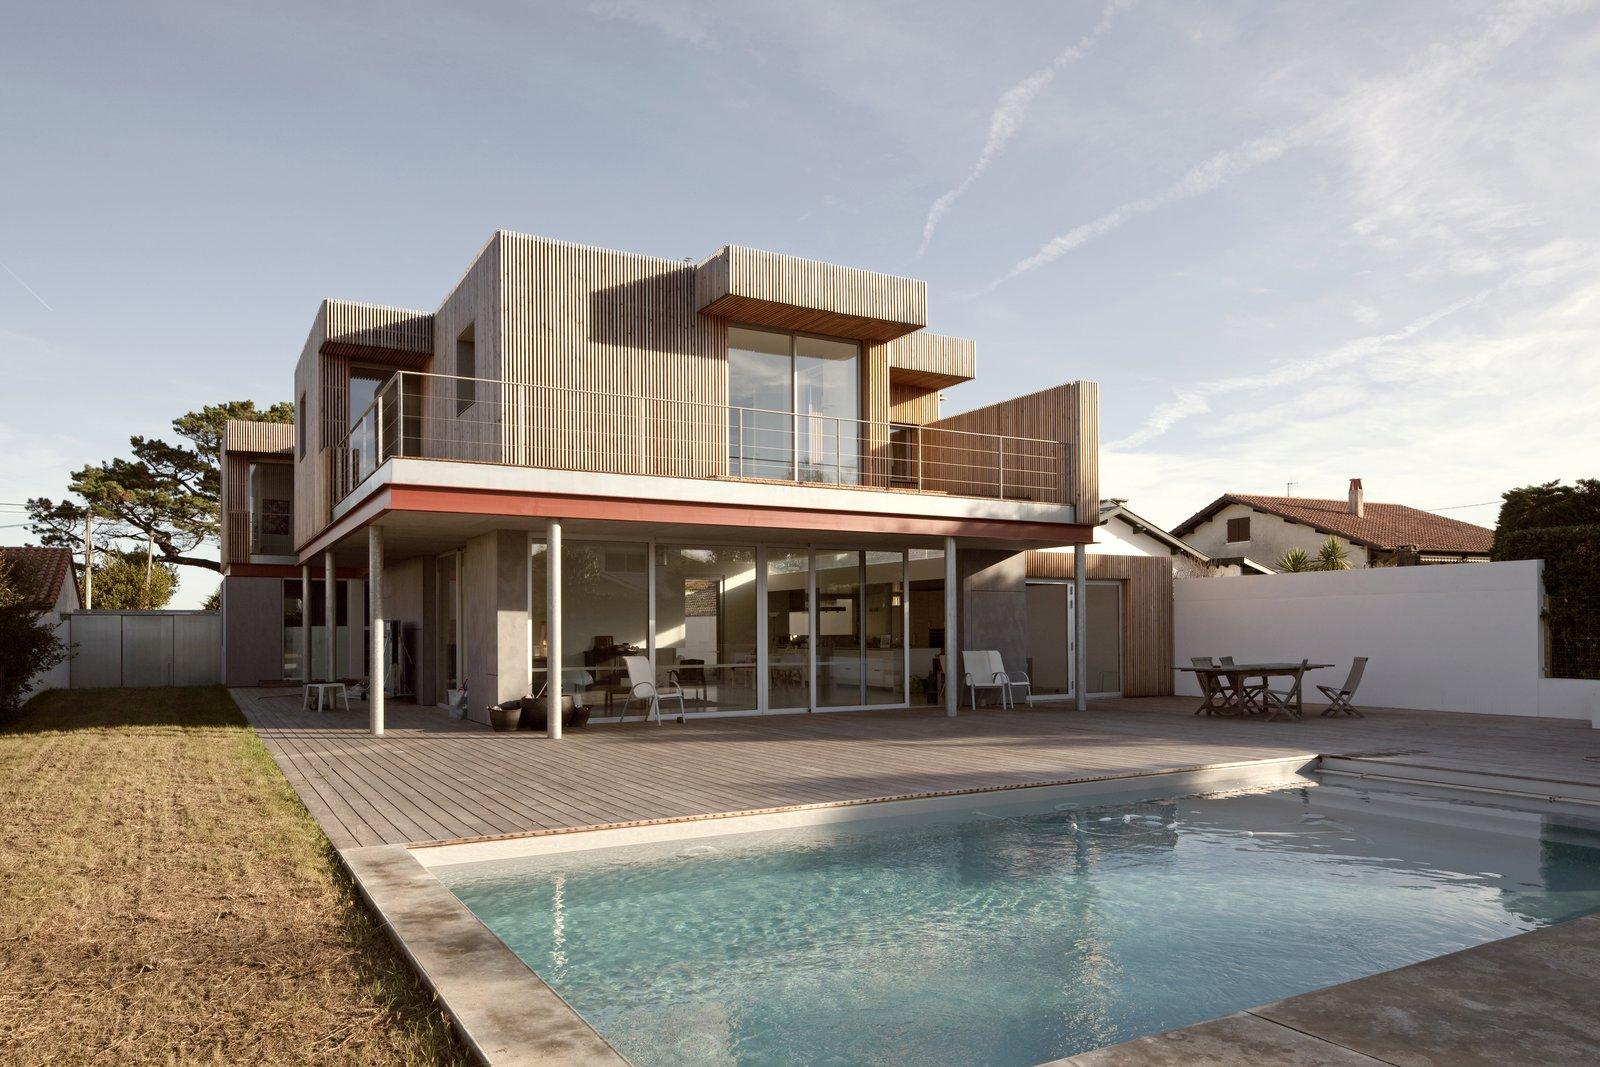 R-House by Gardera-D Architecture